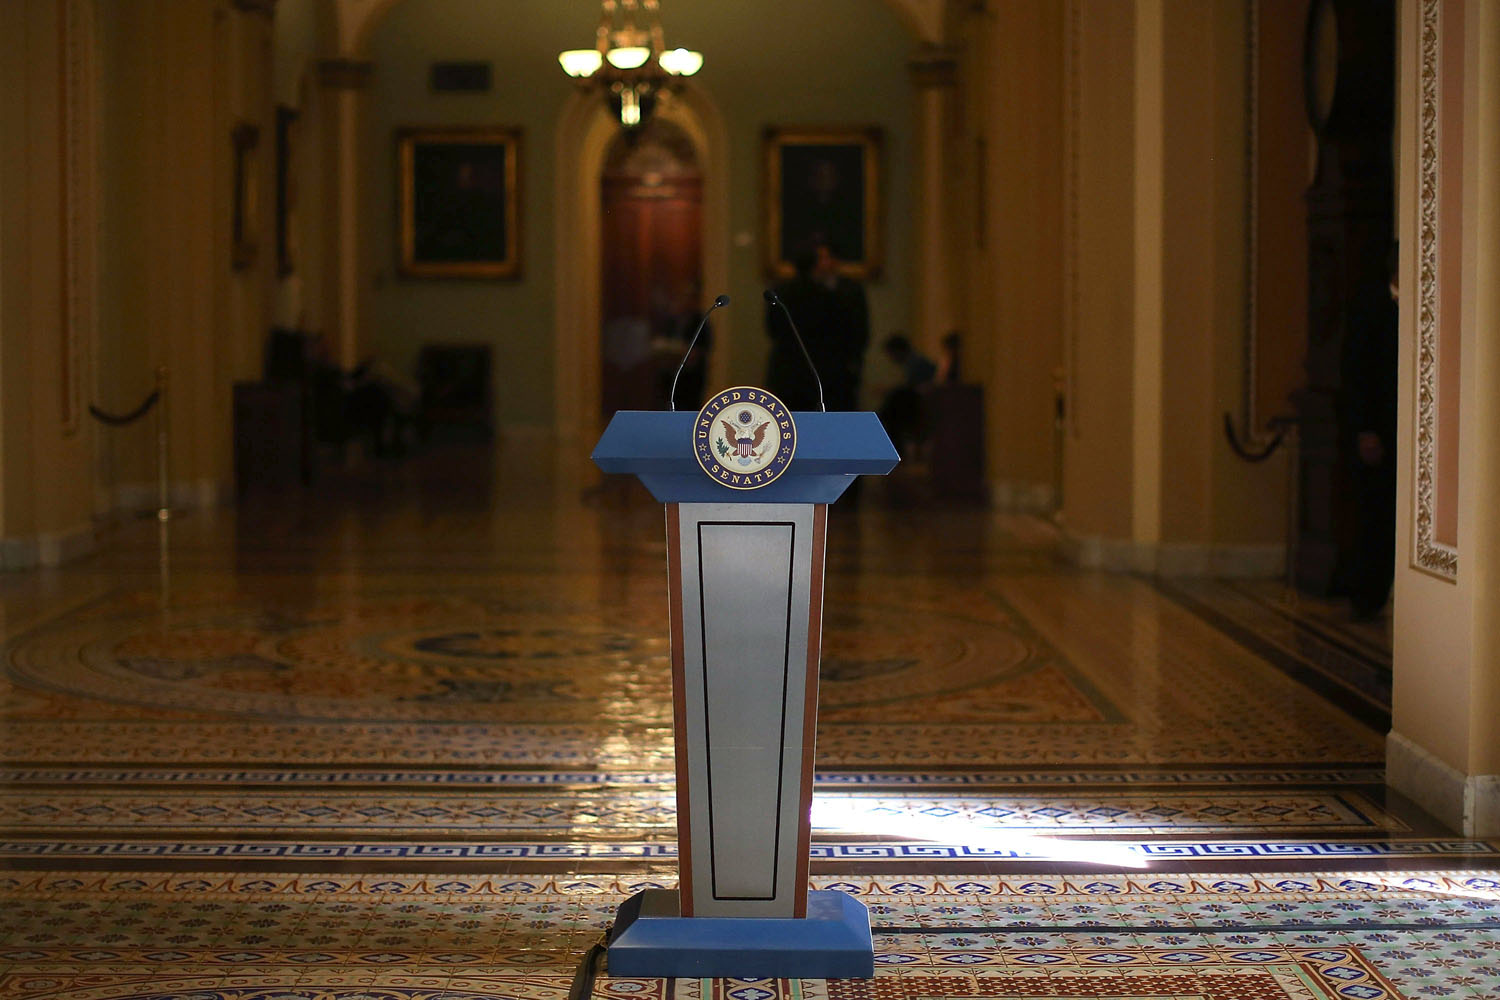 Oct. 8, 2013. A podium stands where Senate Democrats and Republicans where scheduled to talk to the media after their policy luncheon meetings at the U.S. Capitol in Washington.